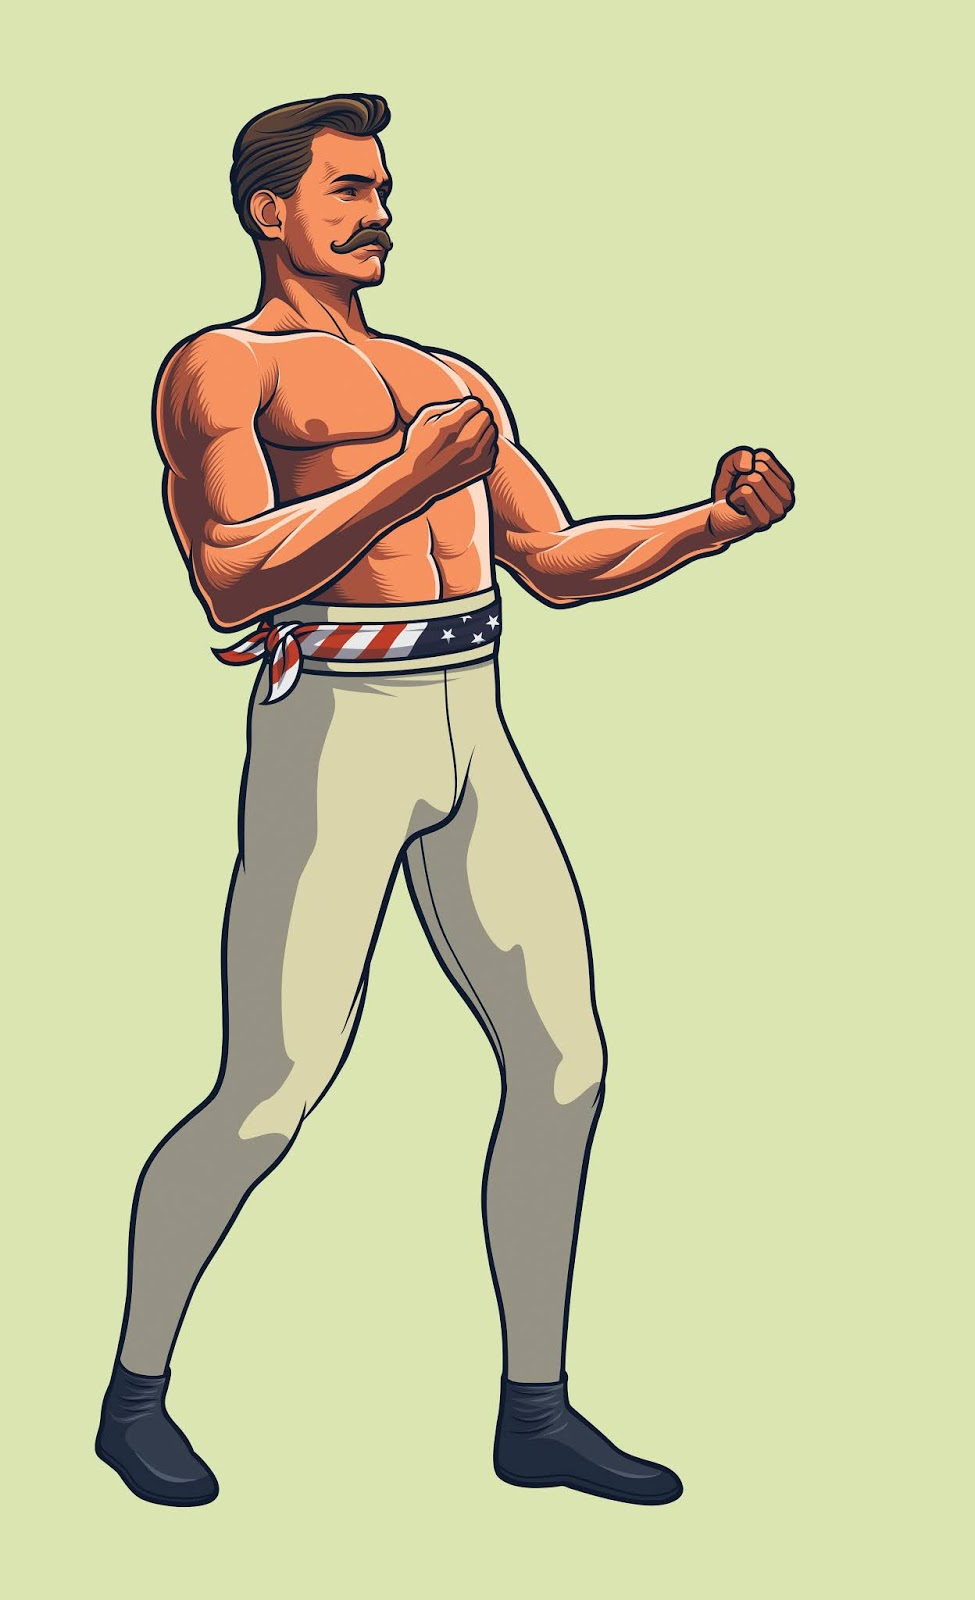 Bare Knucke Boxing Fighter Full Body Free Download Vector CDR, AI, EPS and PNG Formats